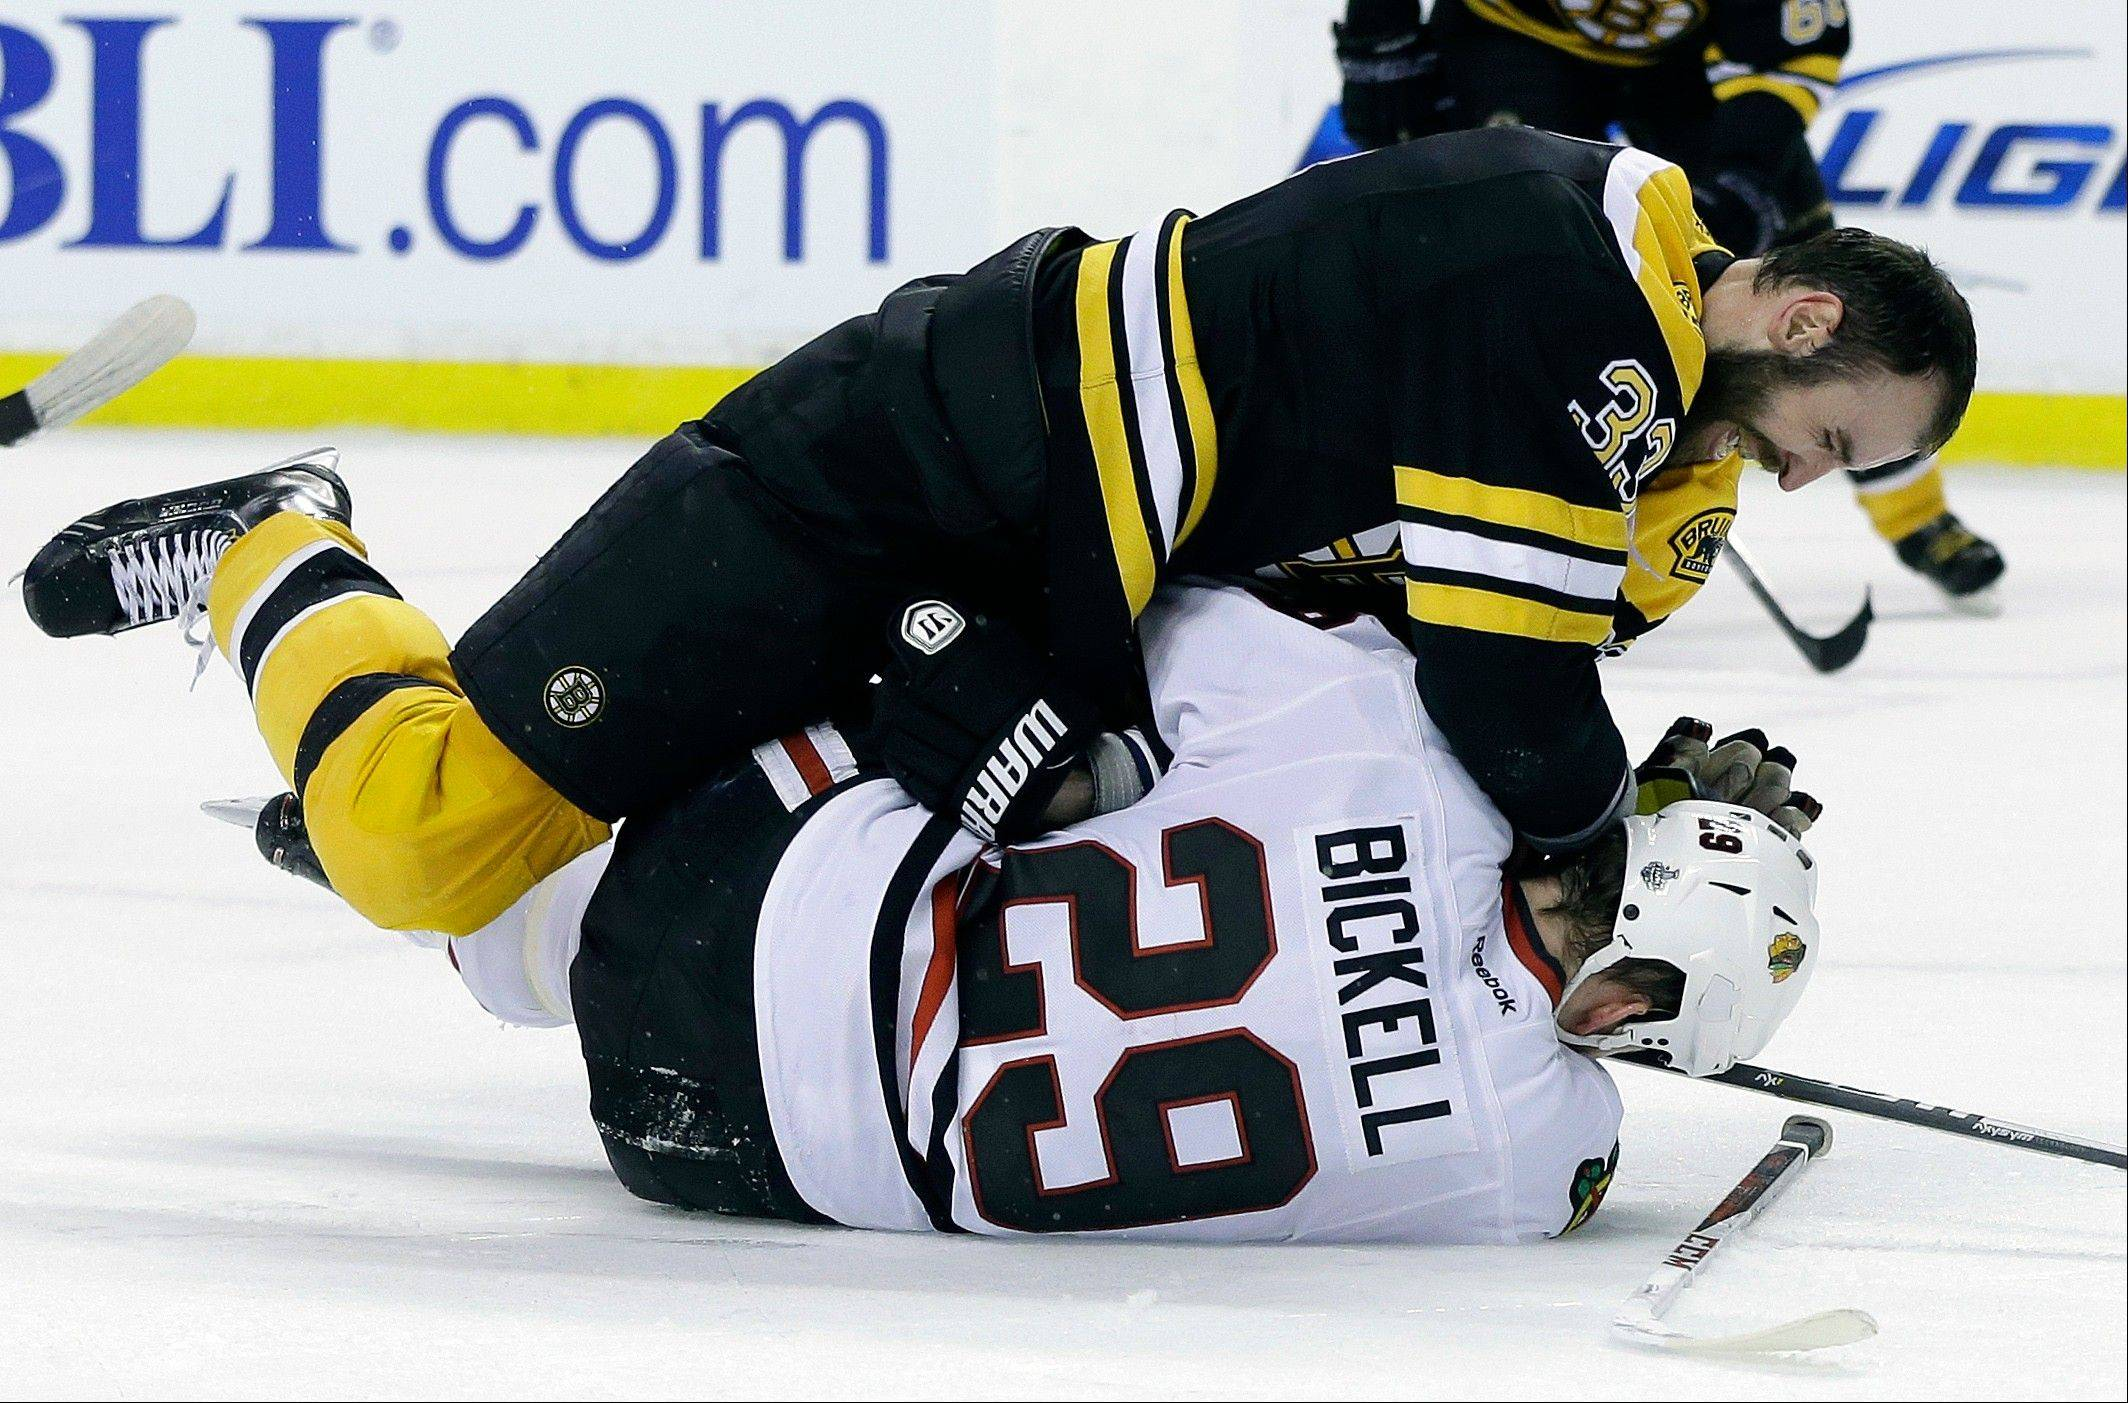 Boston Bruins defenseman Zdeno Chara (33), of Slovakia, takes down Chicago Blackhawks left wing Bryan Bickell (29) during the third period in Game 3 of the NHL hockey Stanley Cup Finals.